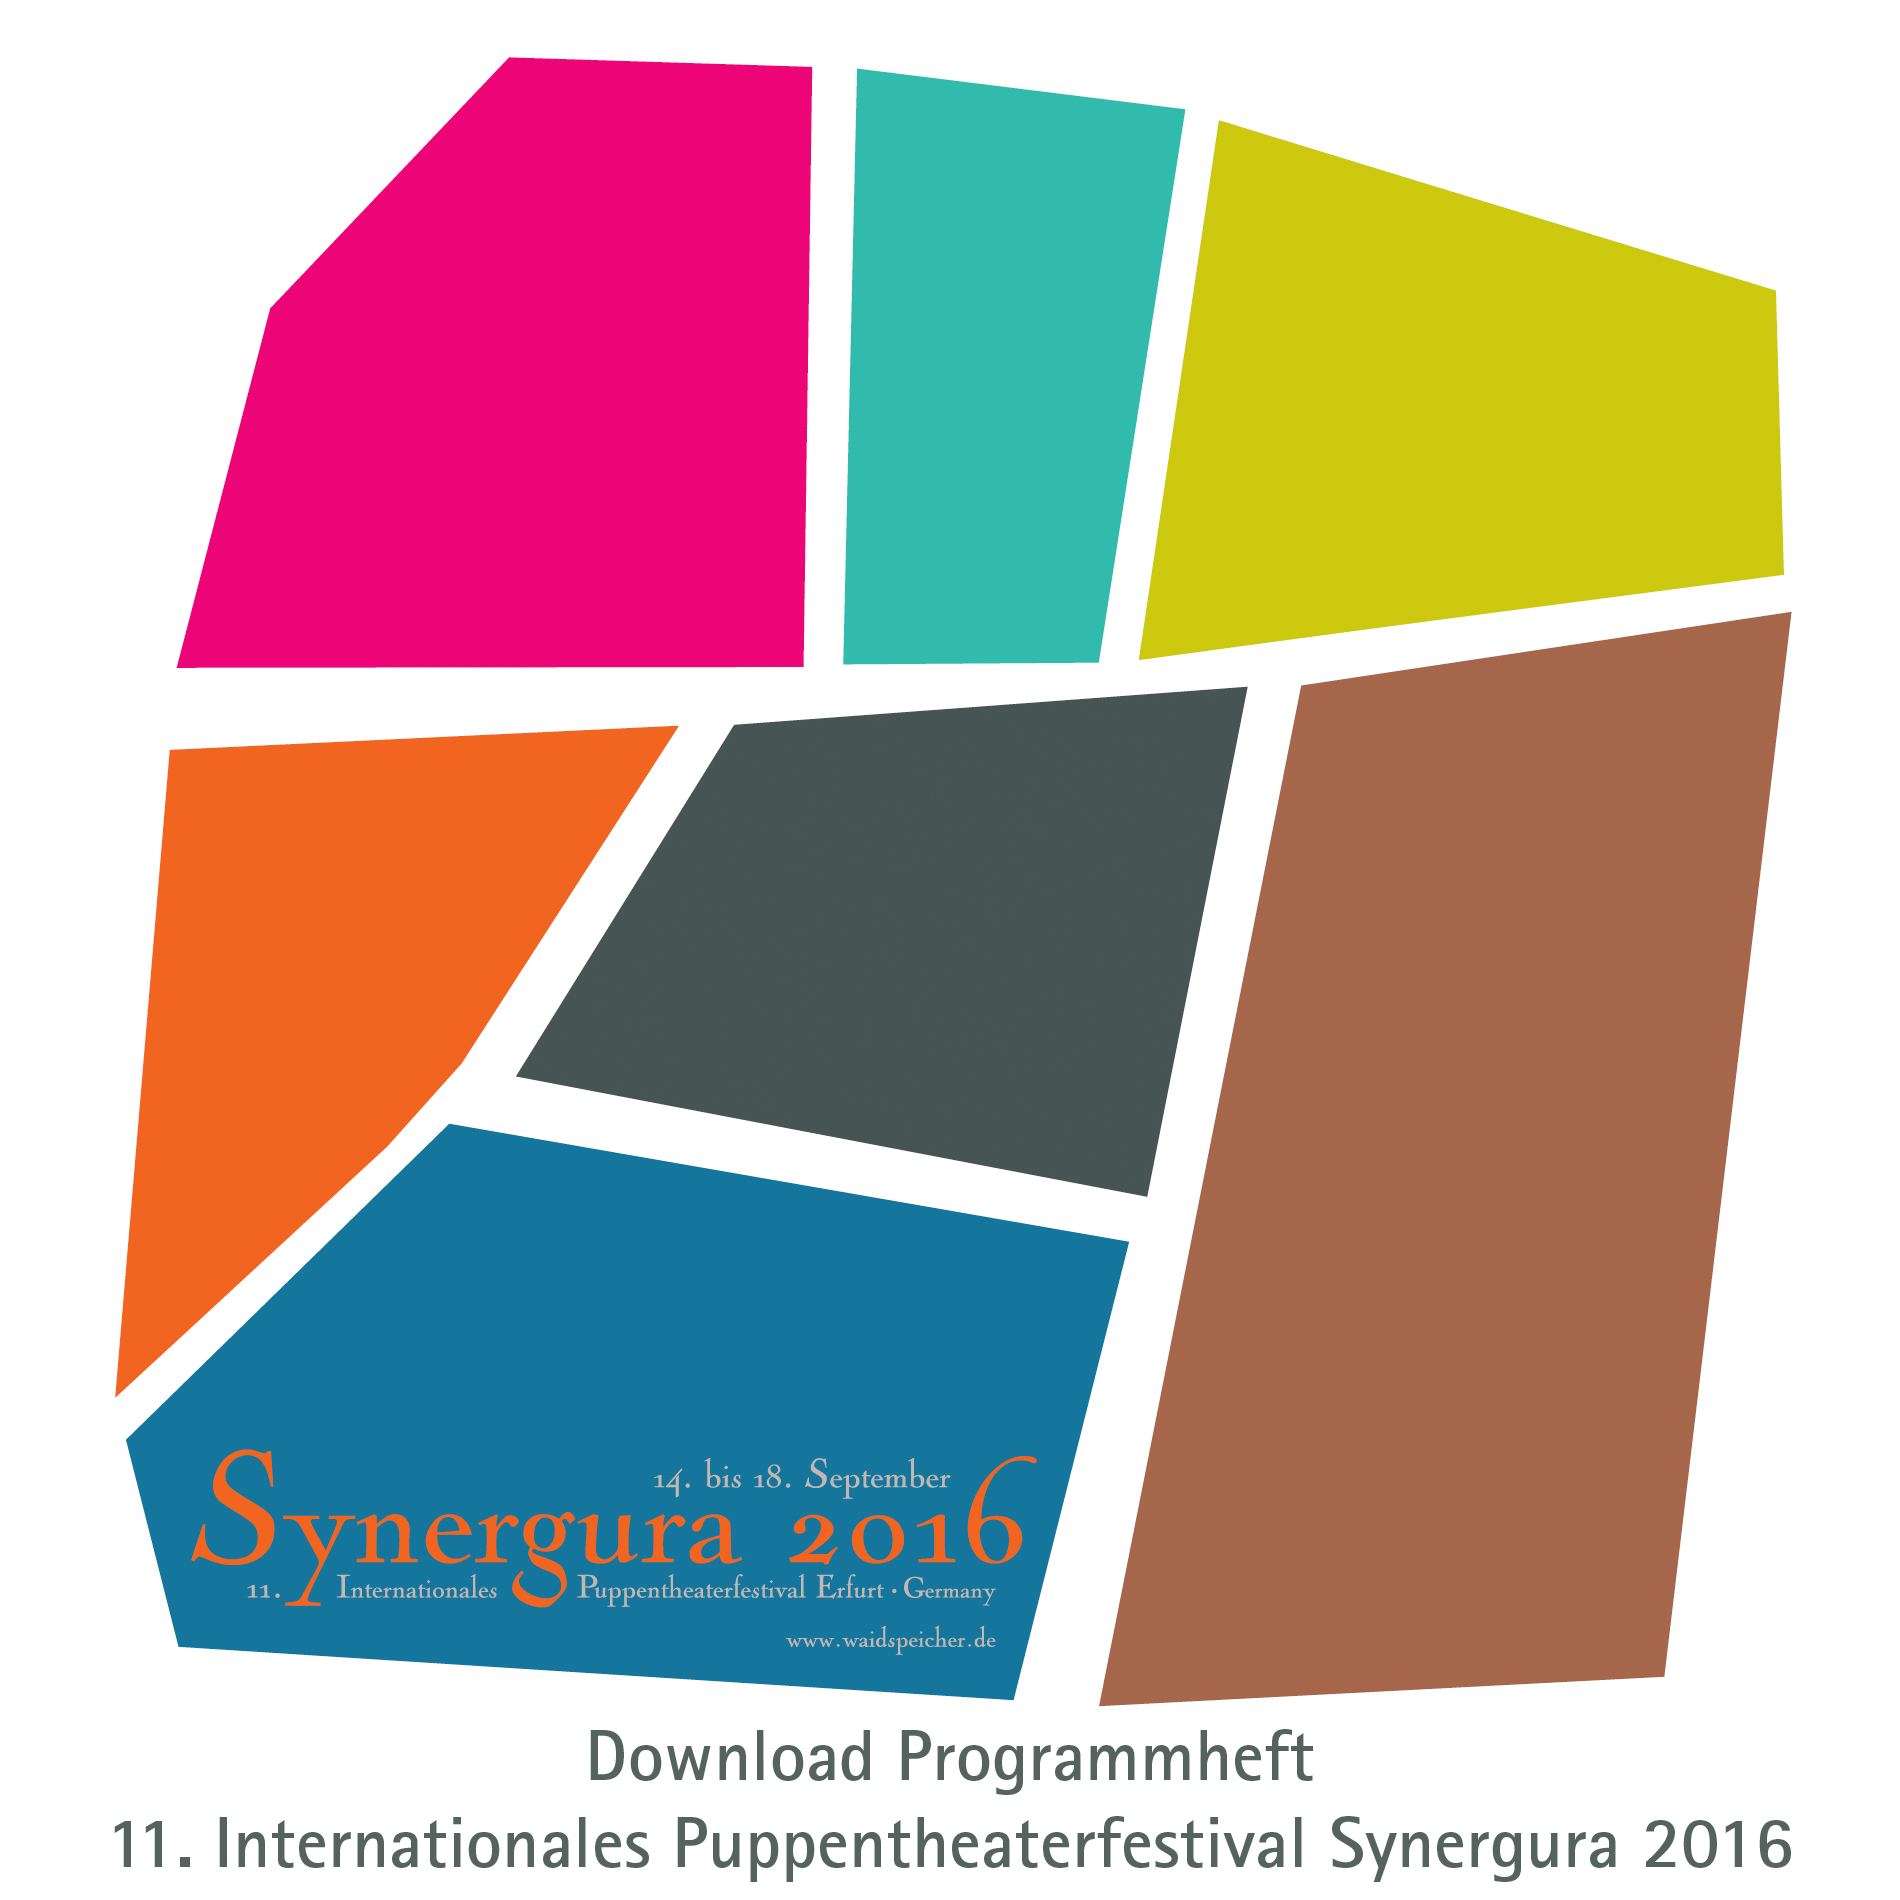 Download Programm Synergura 2016